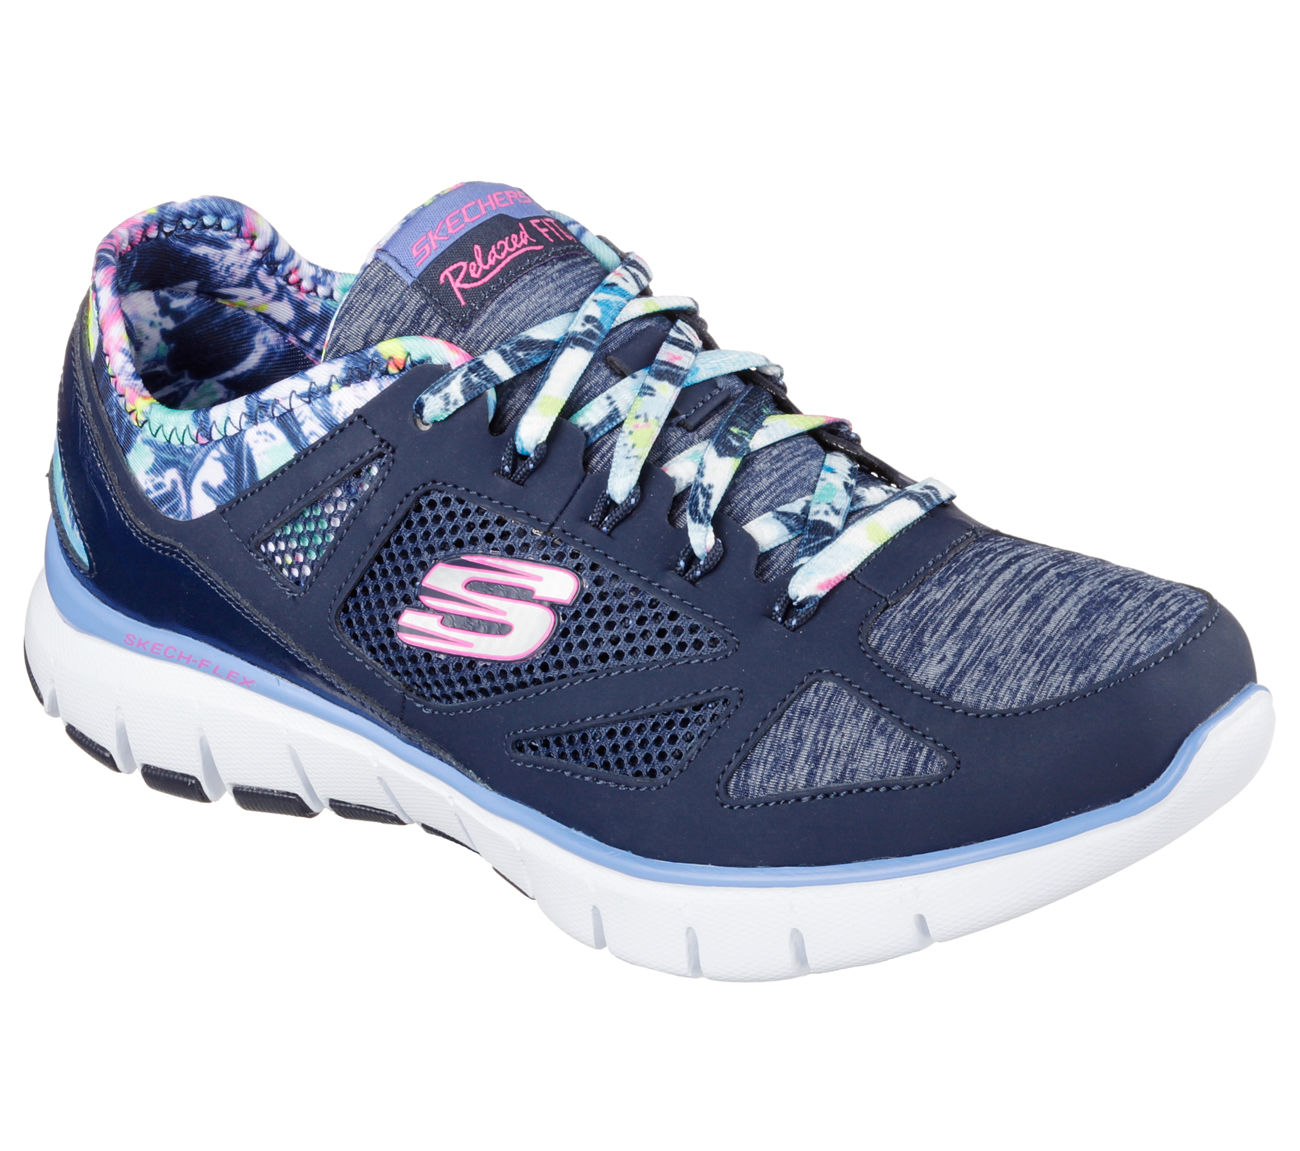 Skechers 12133 NVMT Women's SKECH FLEX-TROPICAL VIBE Training by Skechers